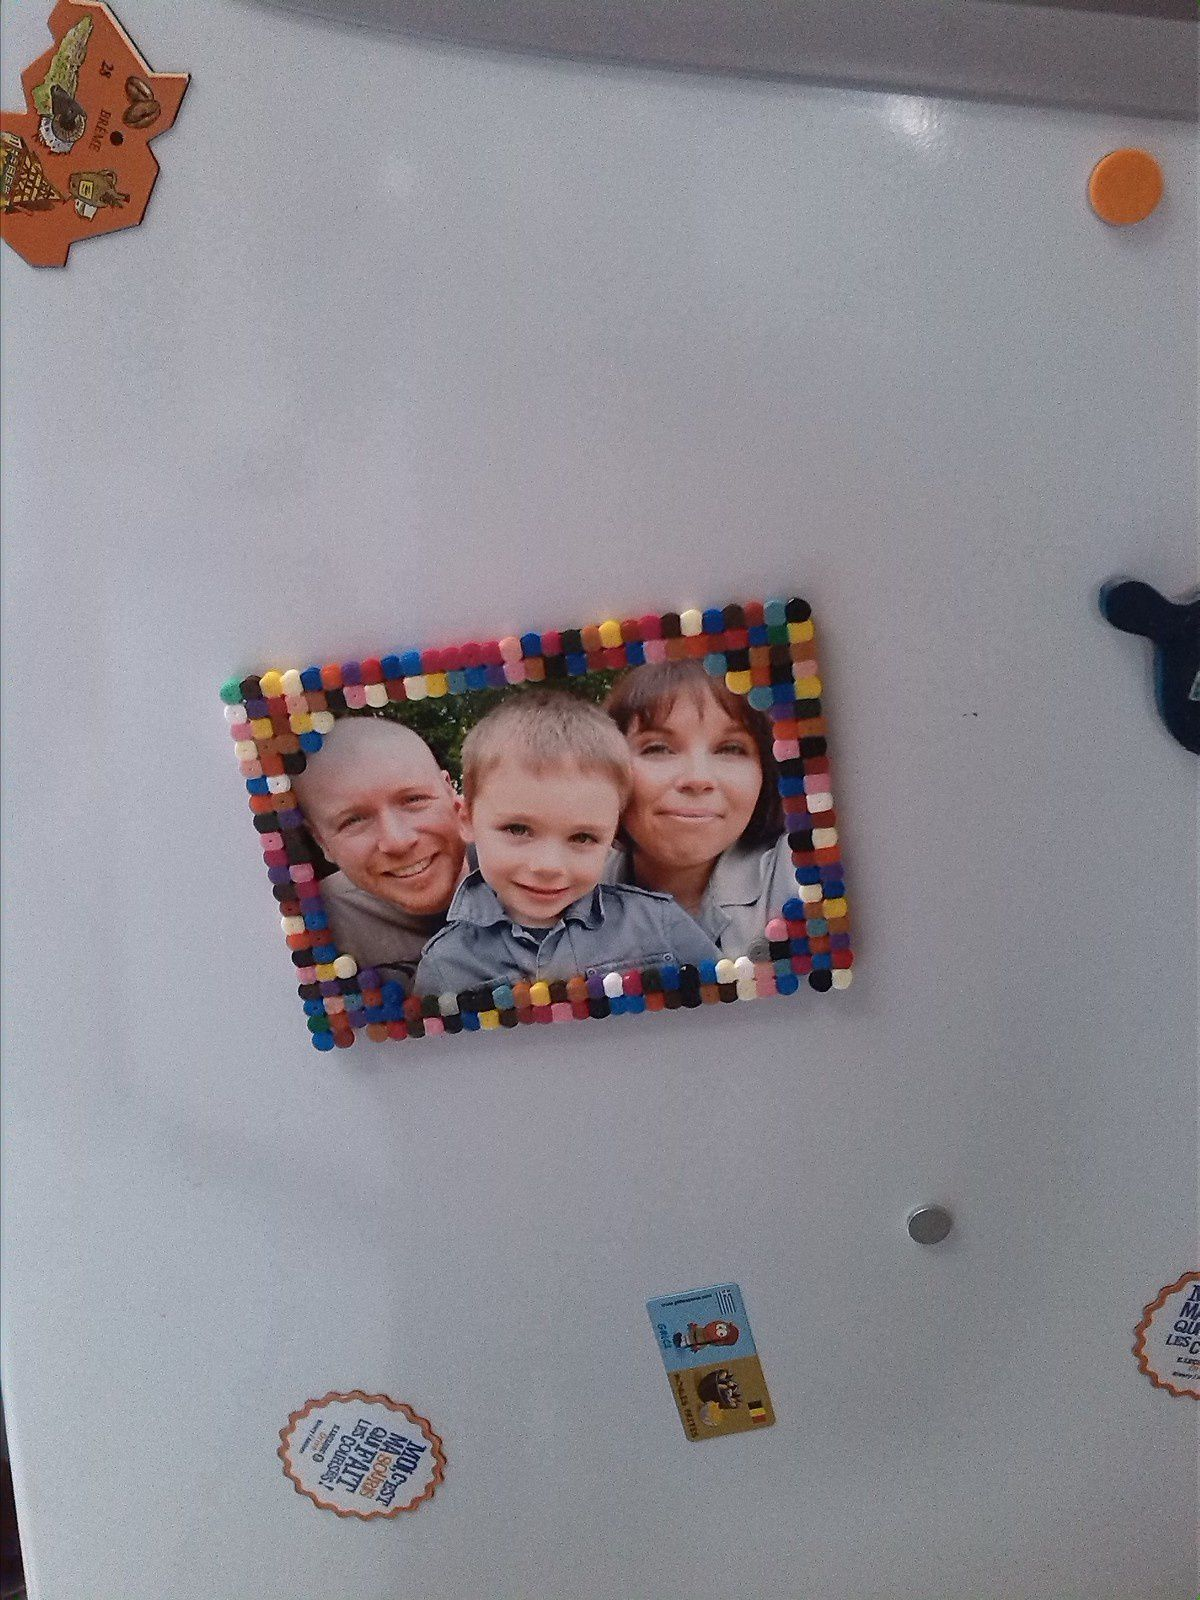 Version aimantée sur le frigo.